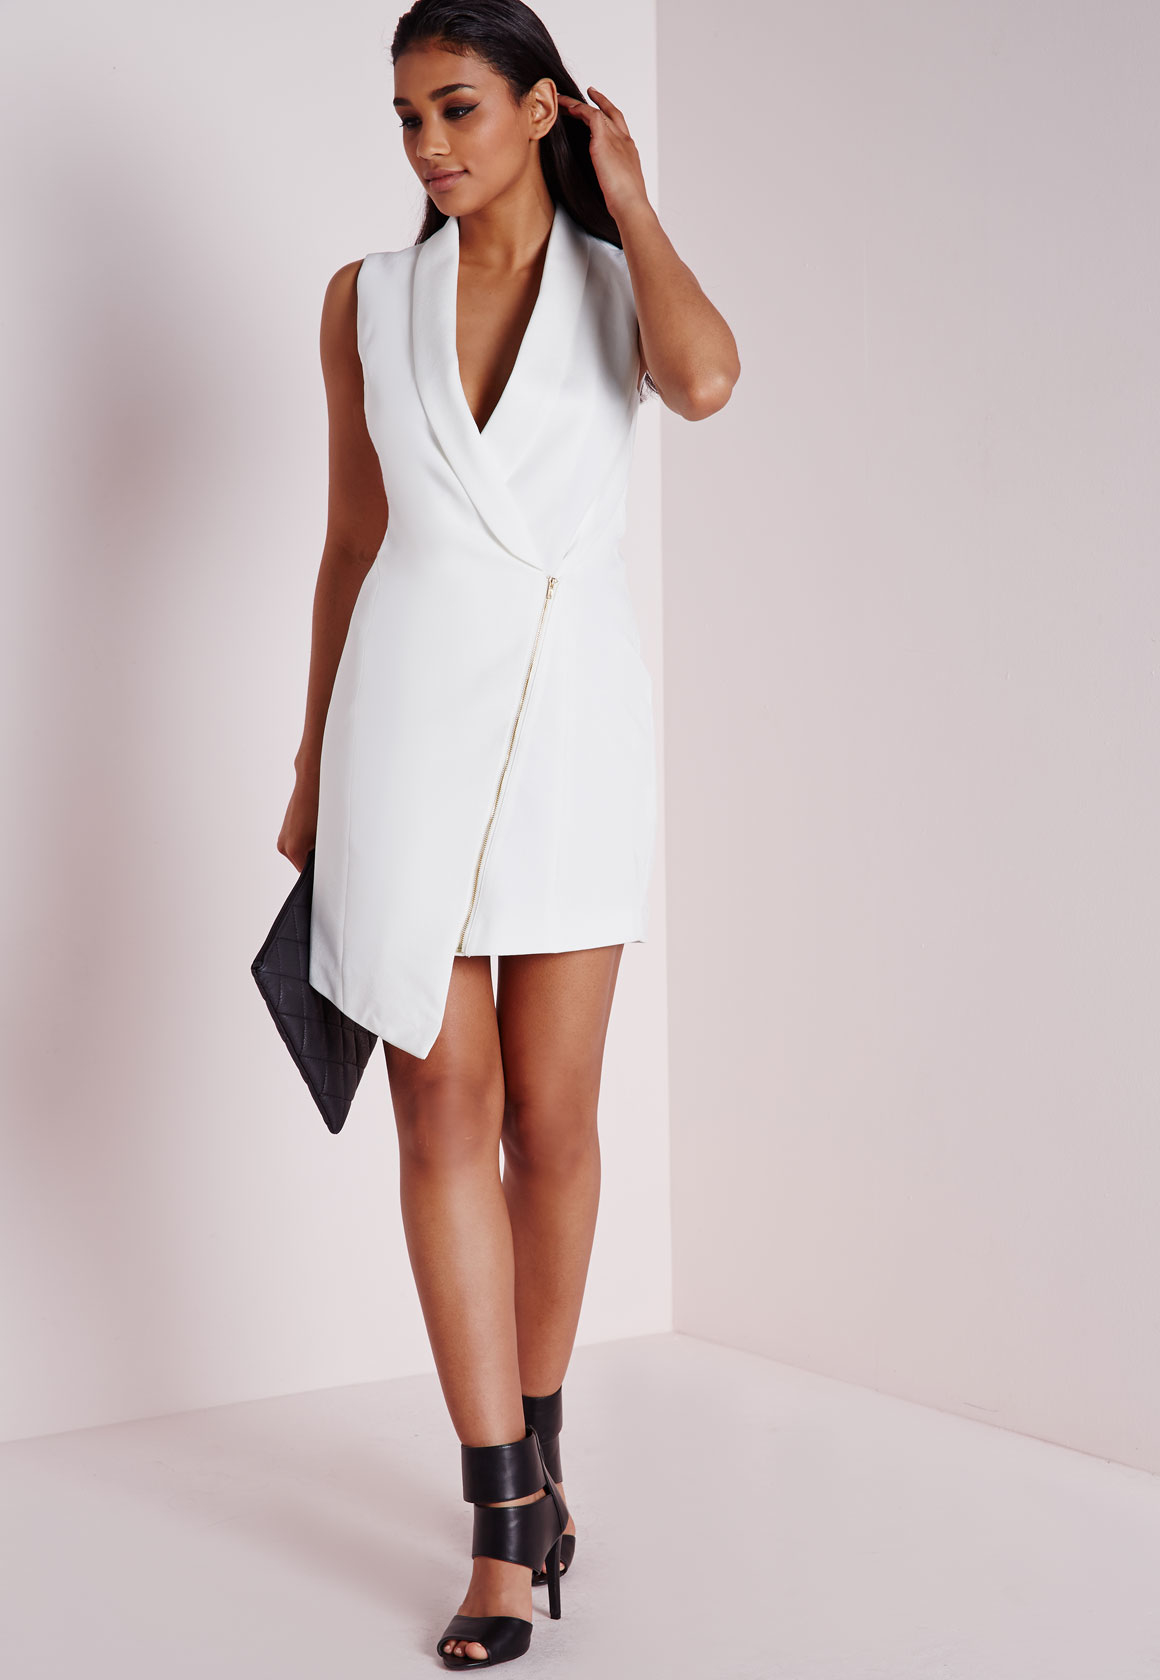 missguided crepe sleeveless blazer dress white in white lyst. Black Bedroom Furniture Sets. Home Design Ideas